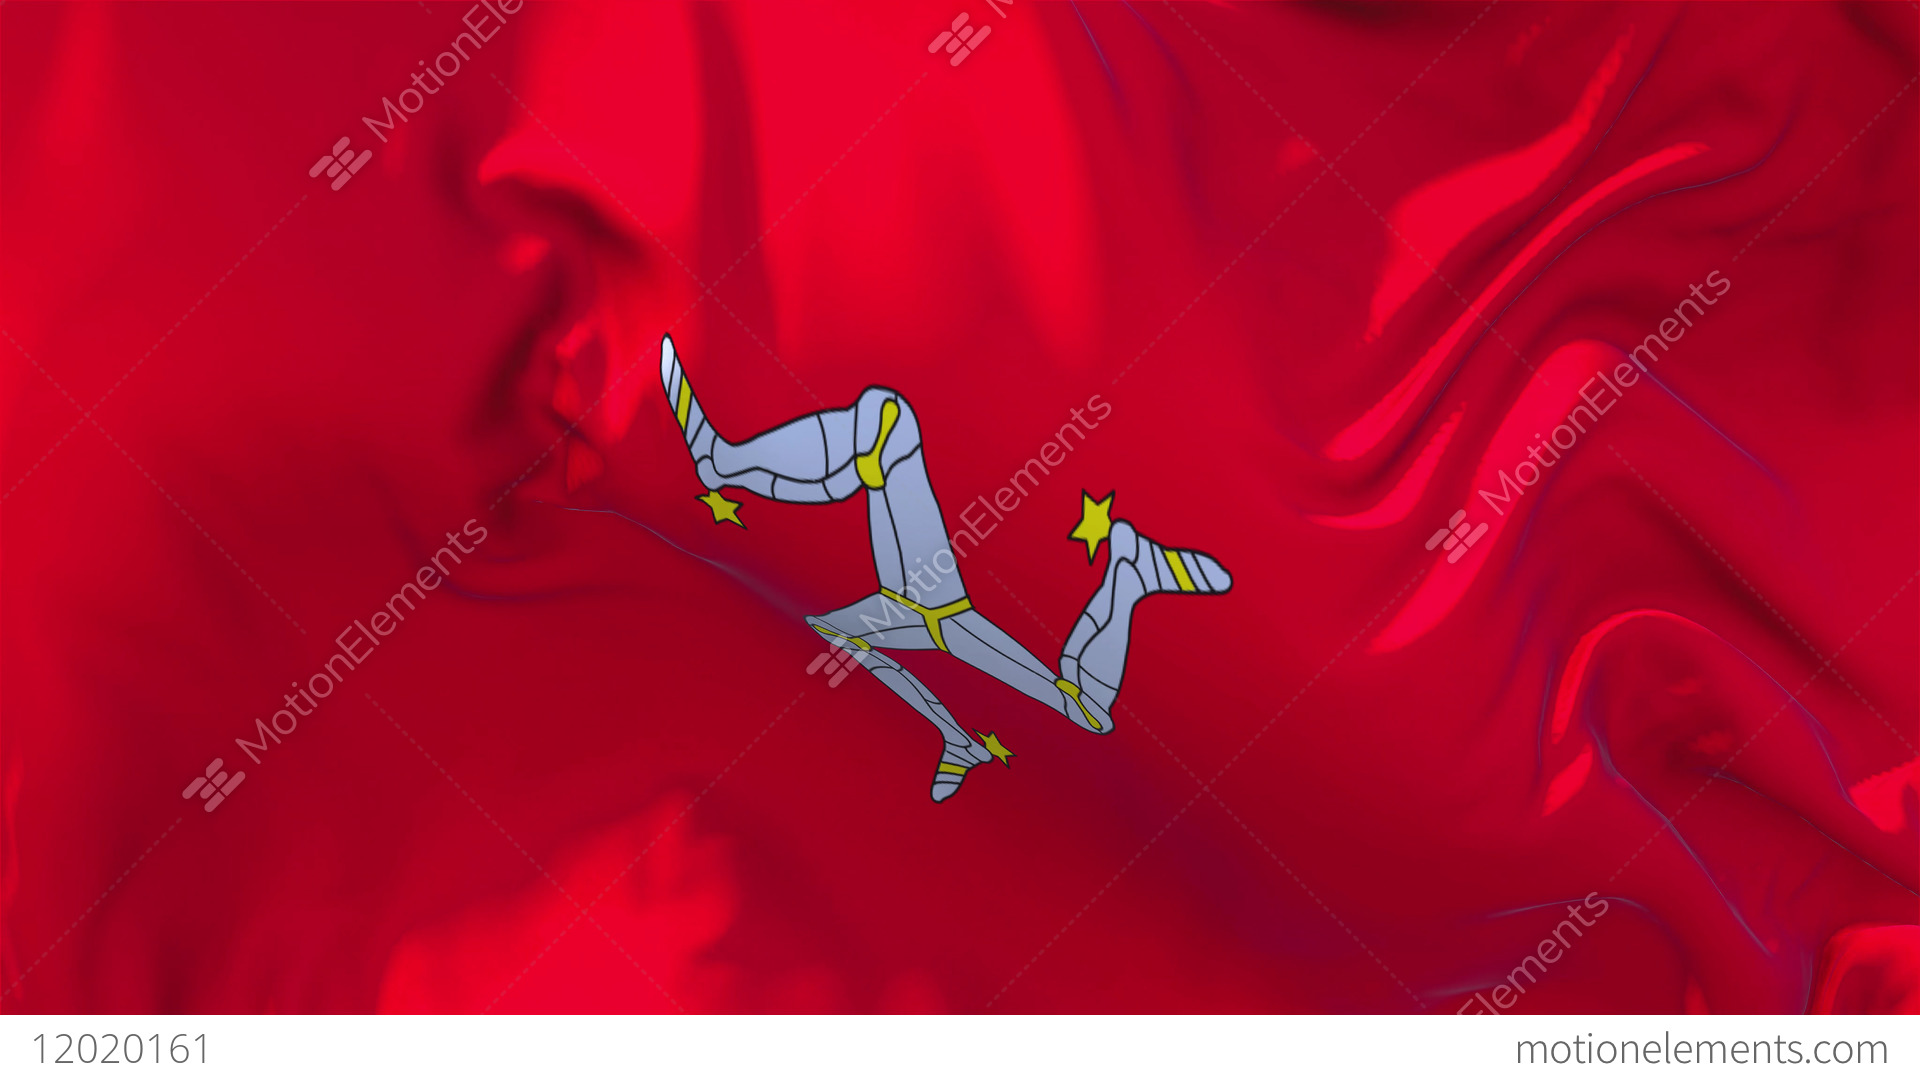 83 isle of man flag waving in wind continuous seamless loop